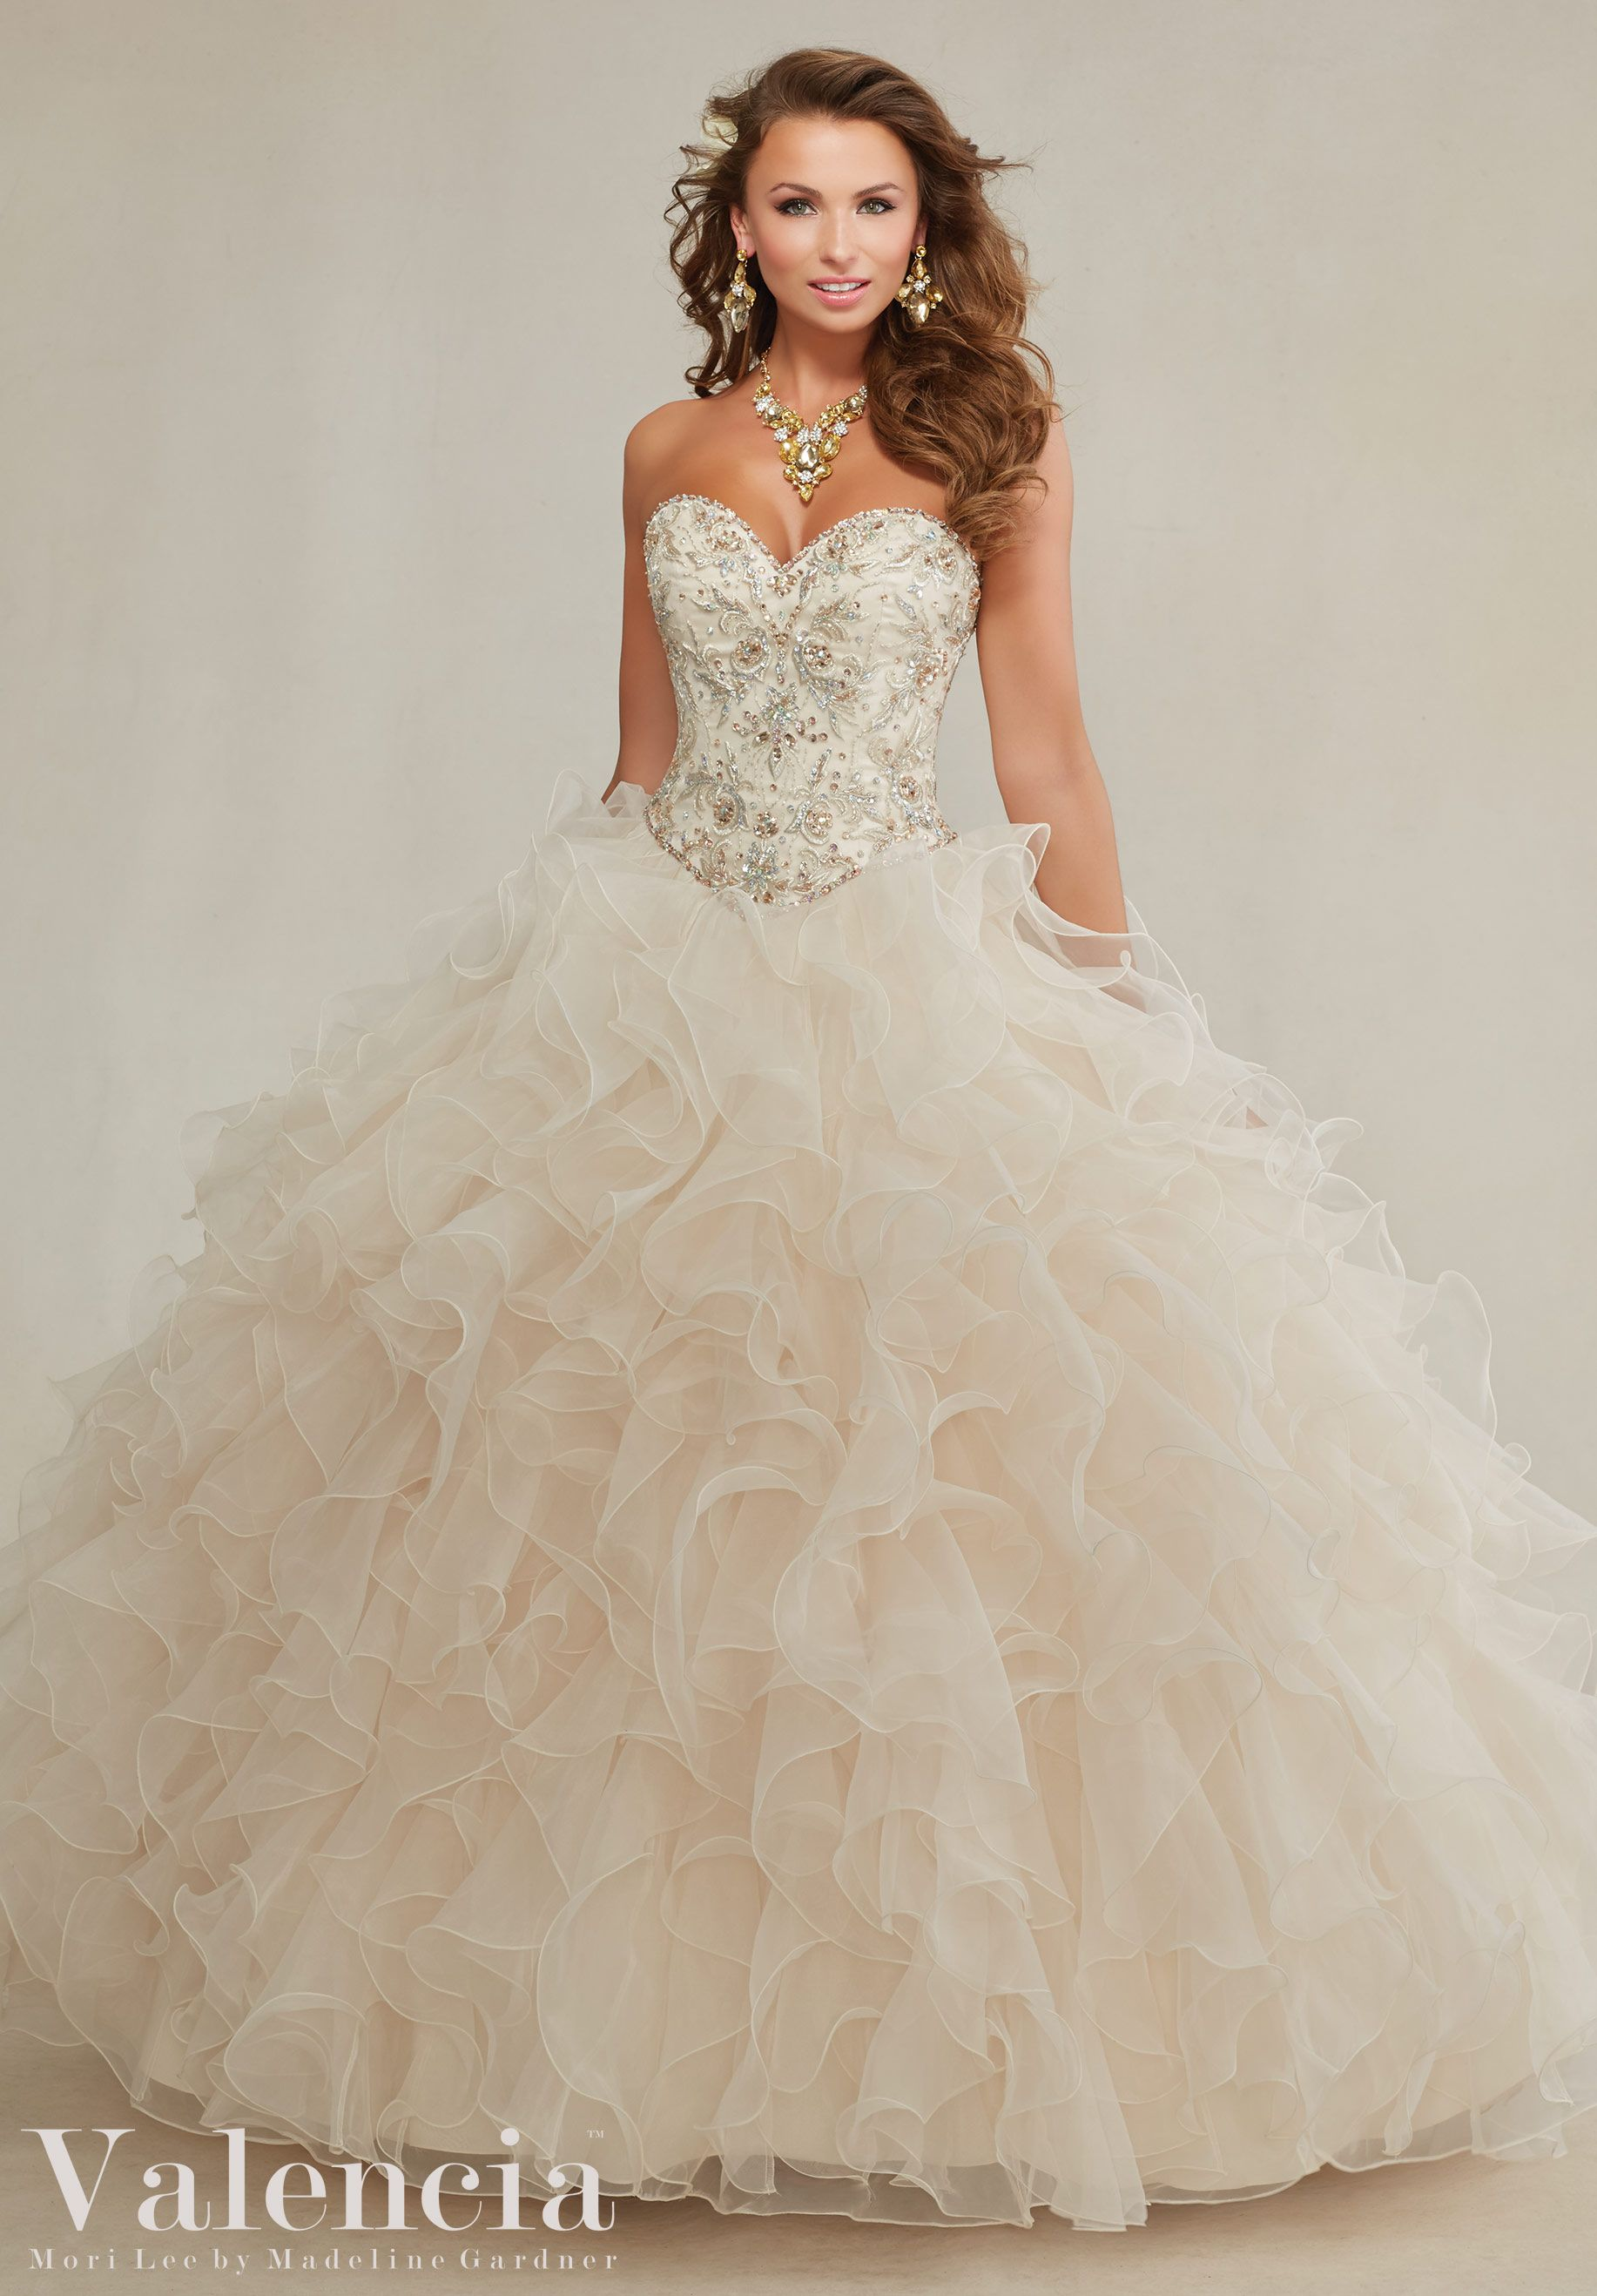 The Latest White Quinceanera Dresses By Your Favorite Designers Quinceanera White Quinceanera Dresses Pretty Quinceanera Dresses Debutante Dresses [ 2636 x 1834 Pixel ]